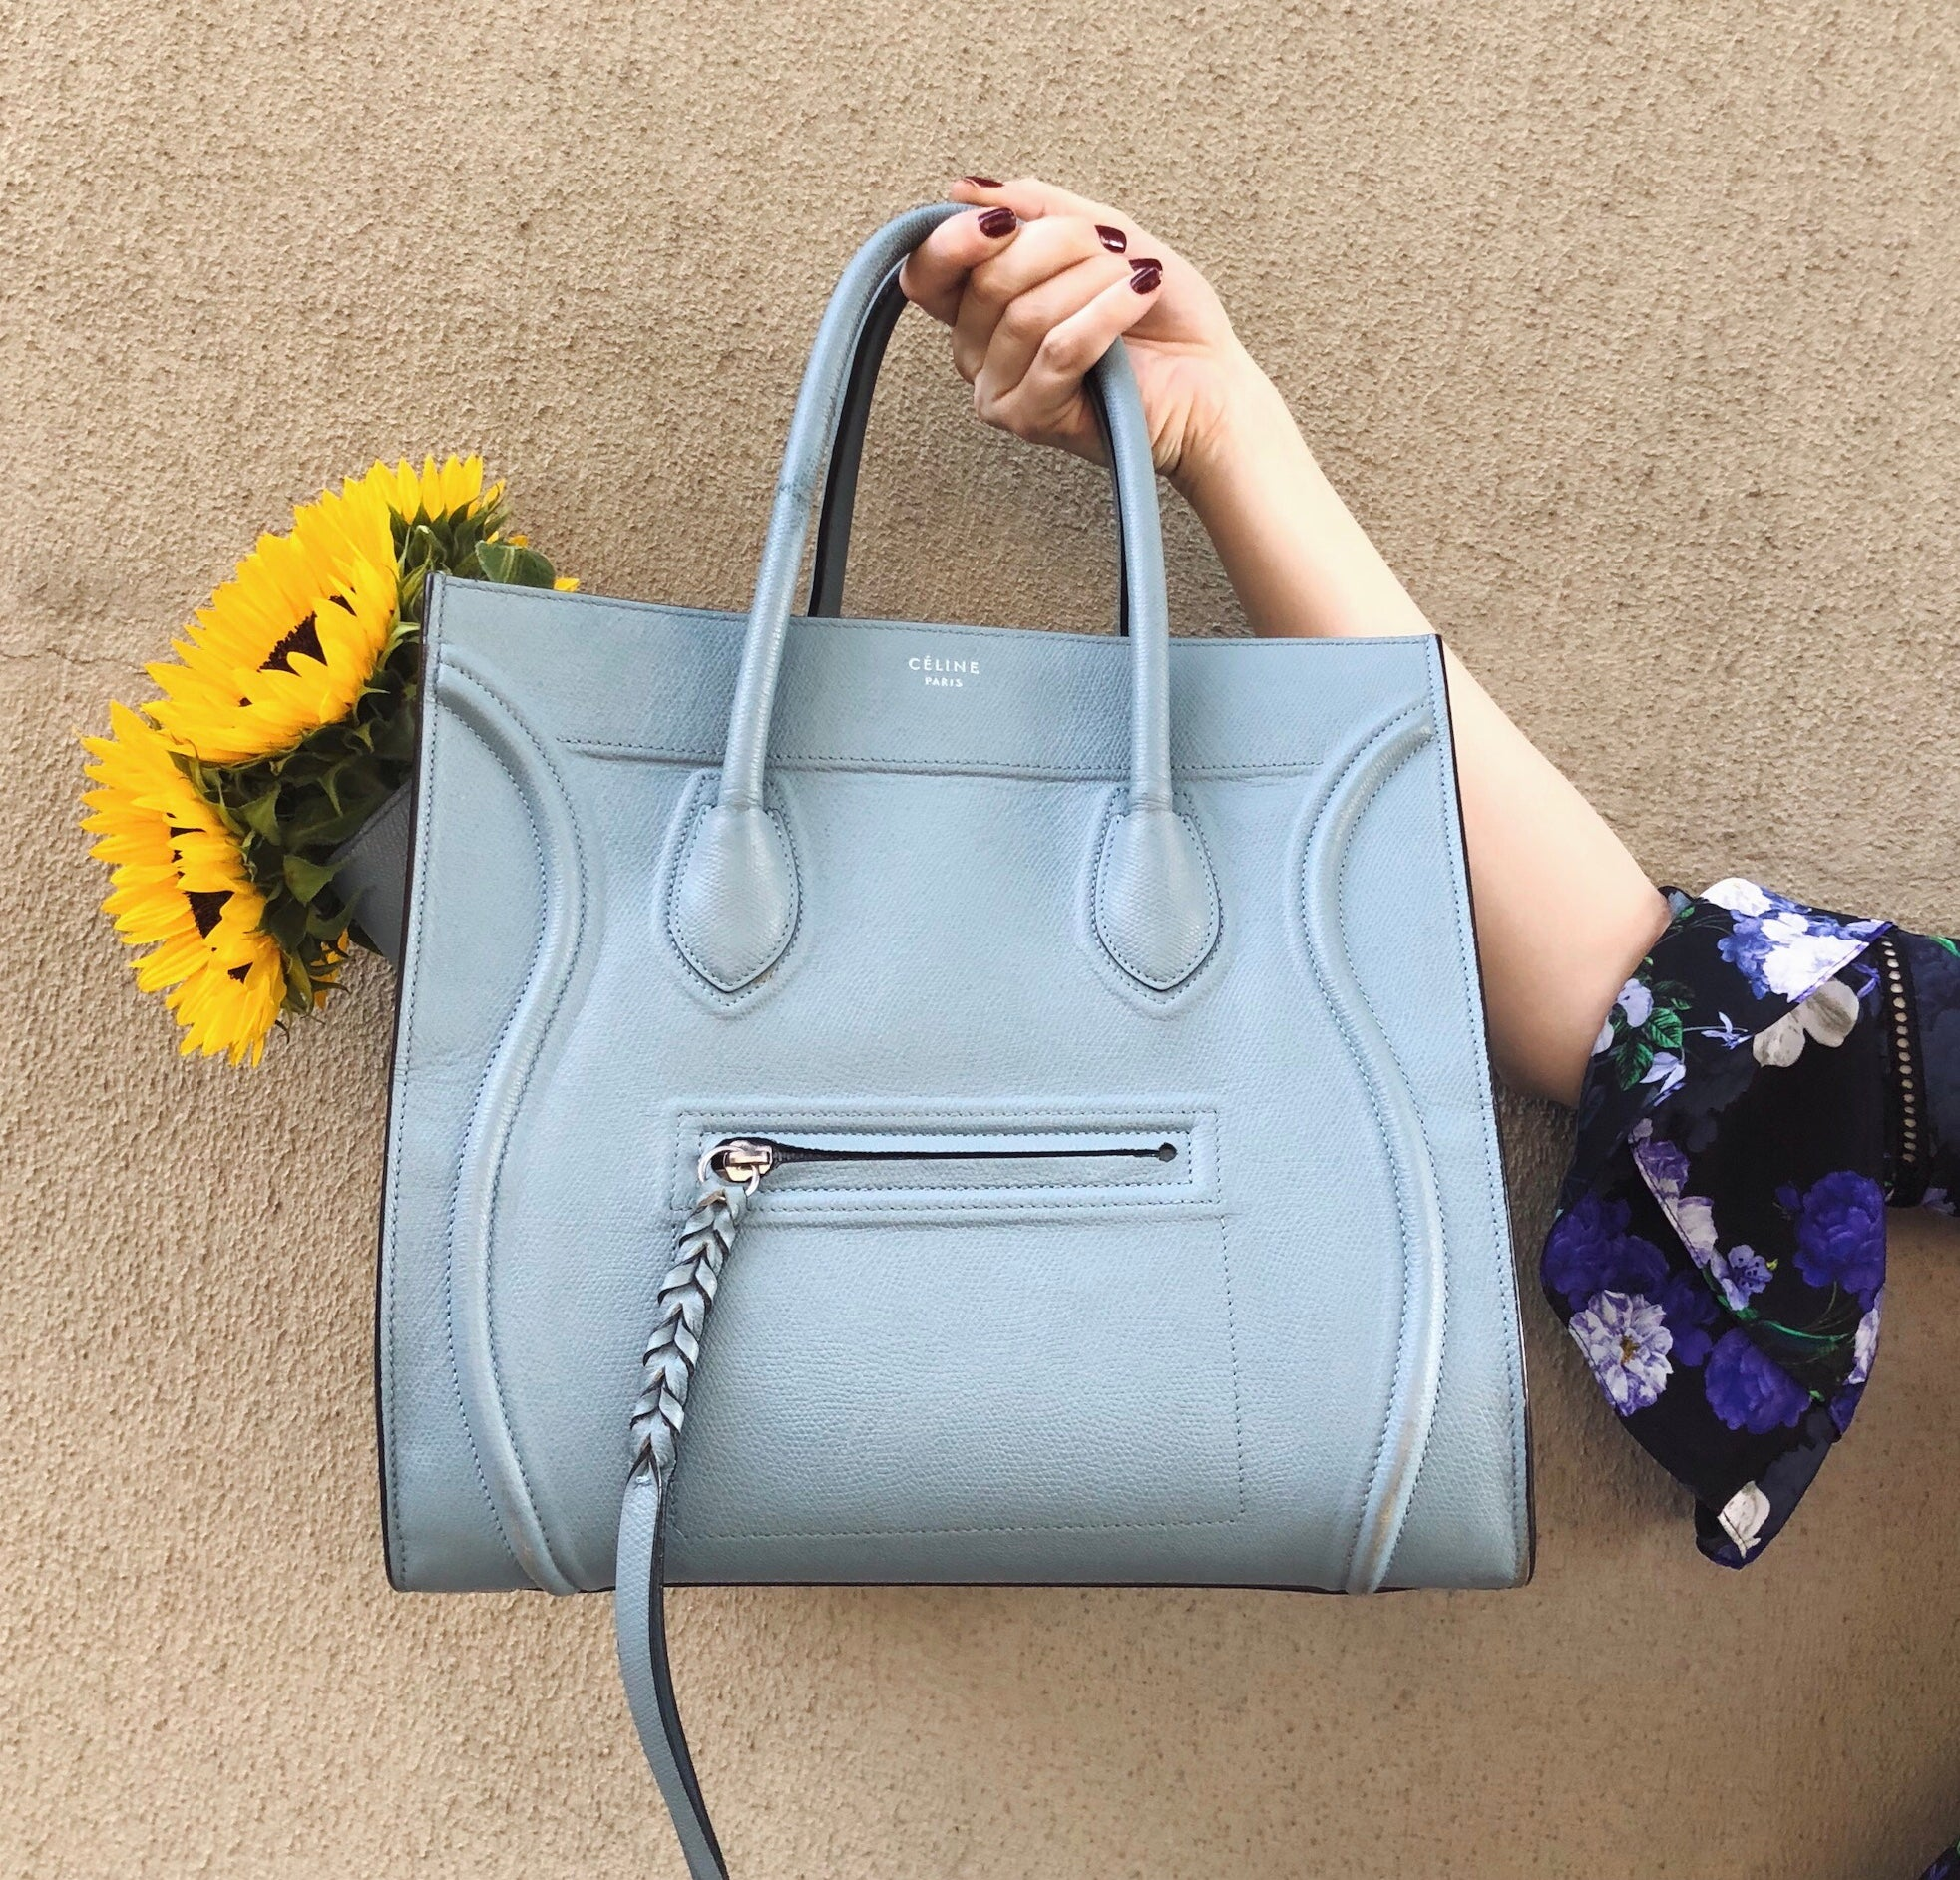 Celine Medium Luggage Phantom Blue Leather Tote